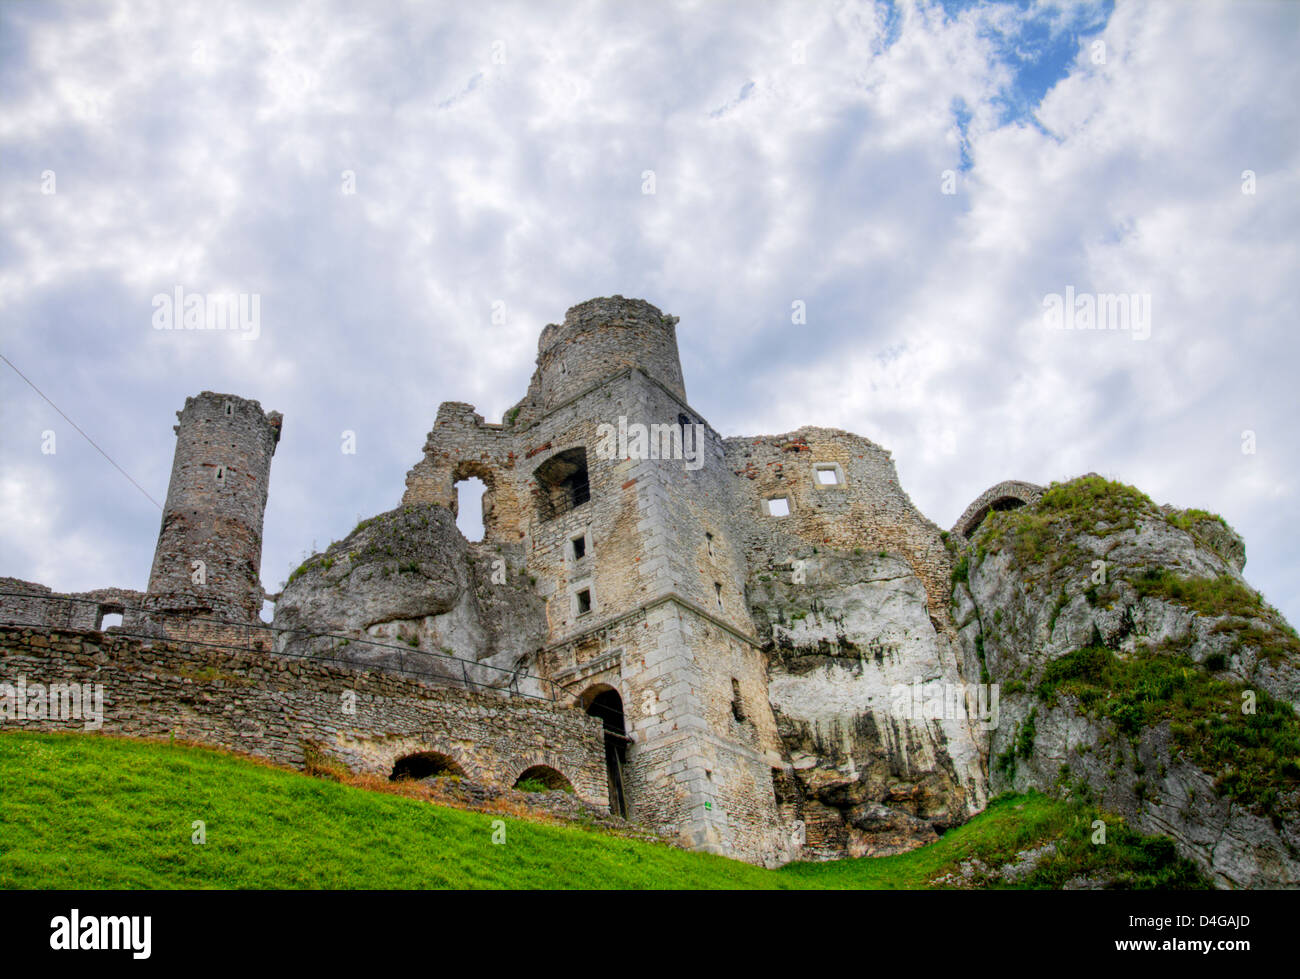 The old castle ruins of Ogrodzieniec fortifications, Poland. HDR image. Stock Photo